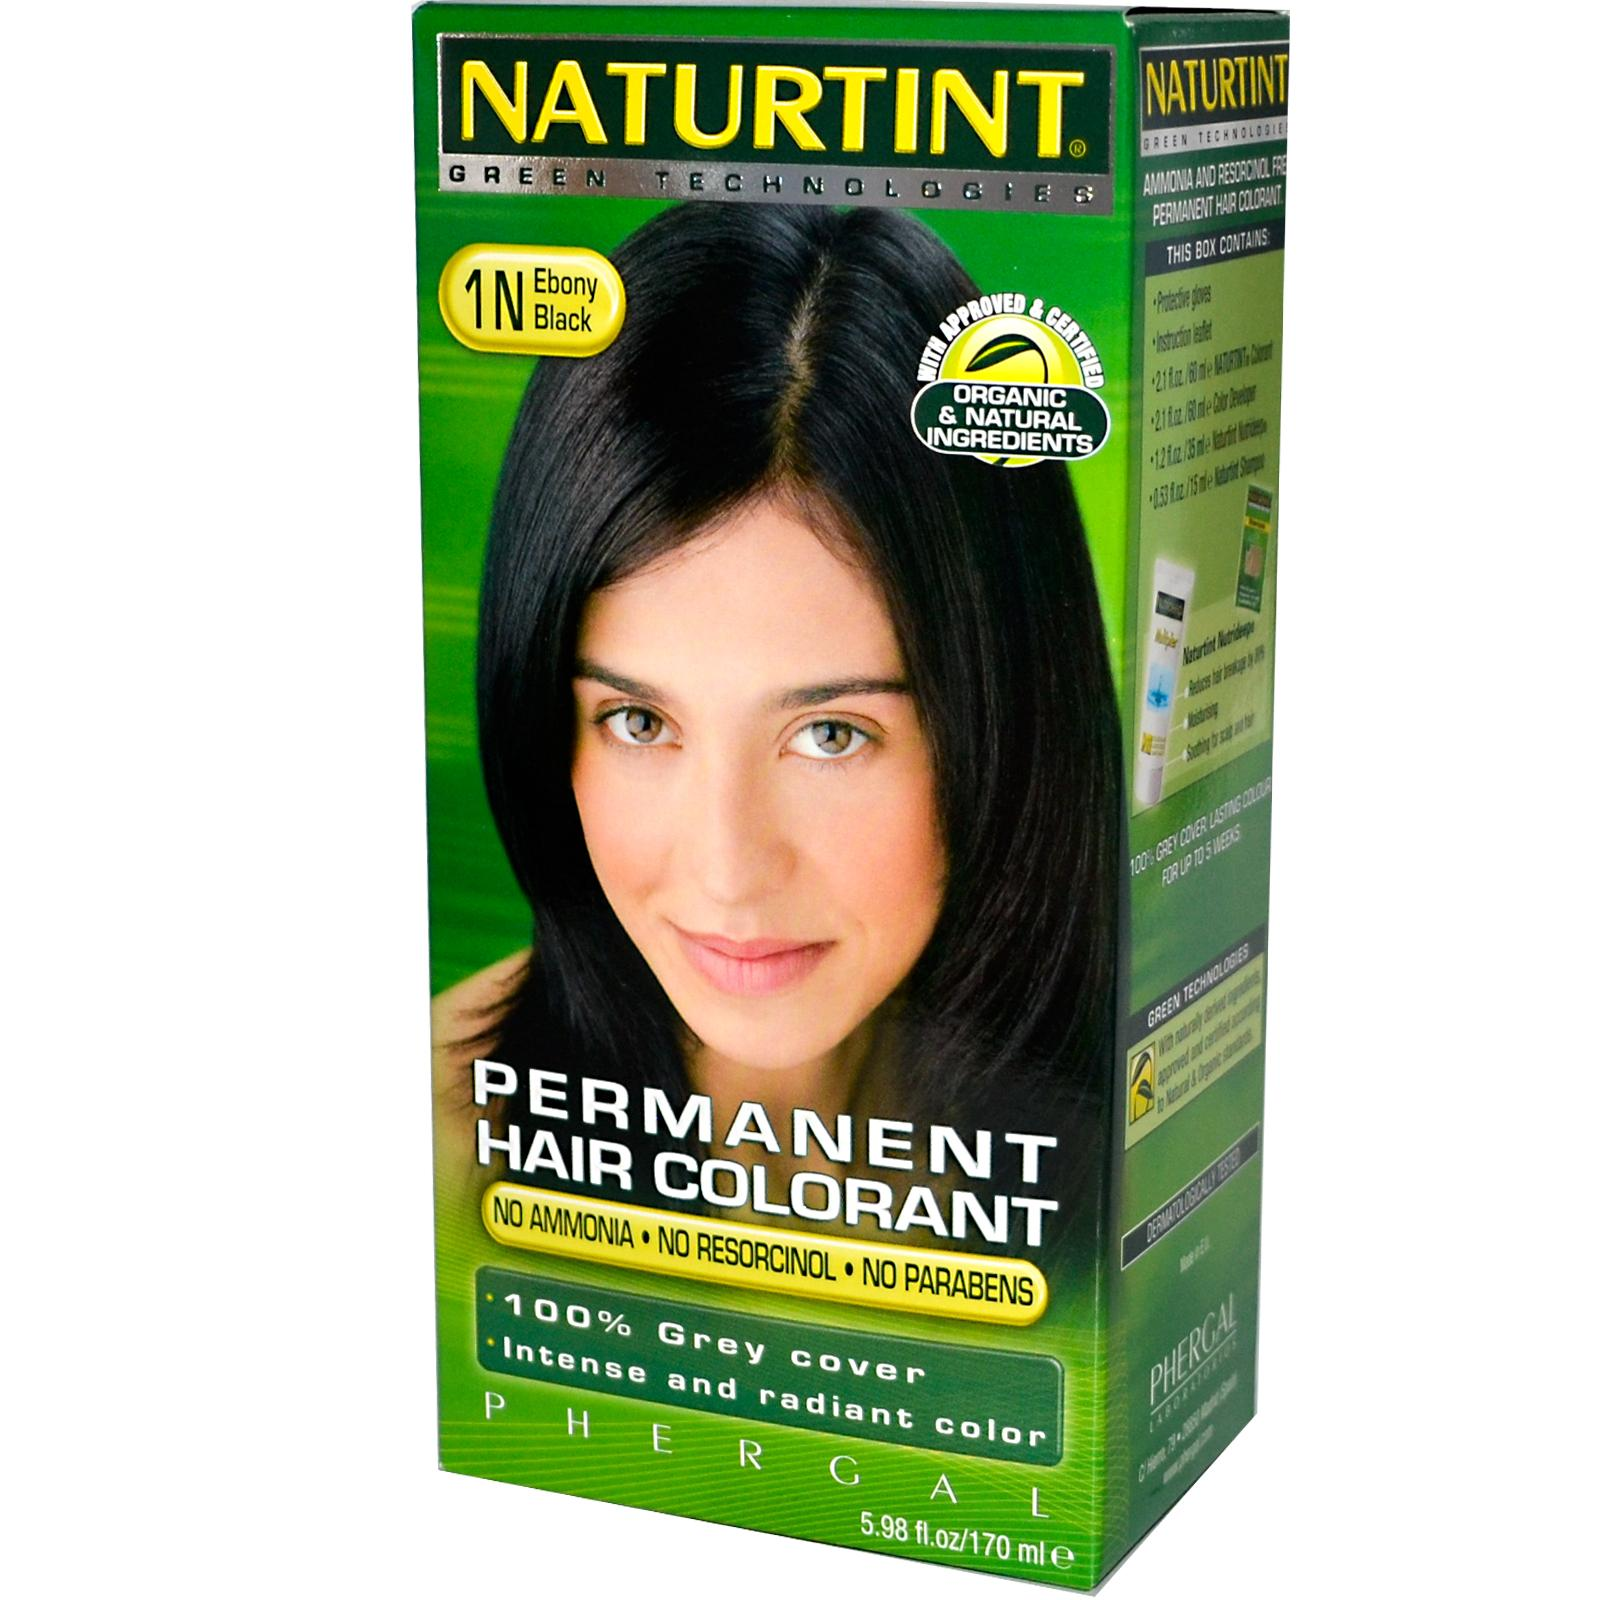 Naturtint 1n Black Ebony Hair Color (1xKit)